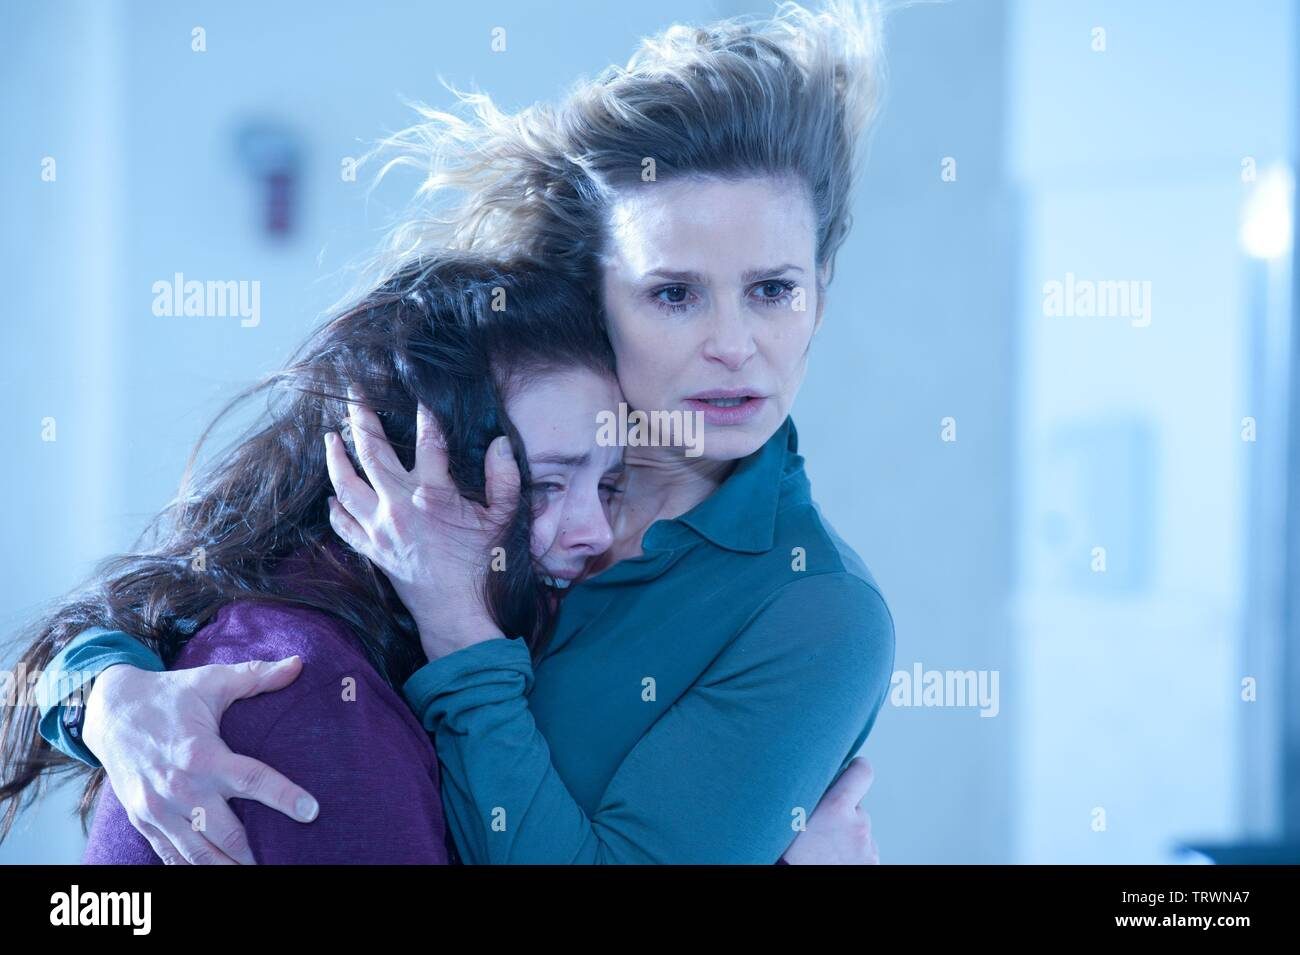 KYRA SEDGWICK and MADISON DAVENPORT in THE POSSESSION (2012). Copyright: Editorial use only. No merchandising or book covers. This is a publicly distributed handout. Access rights only, no license of copyright provided. Only to be reproduced in conjunction with promotion of this film. Credit: GHOST HOUSE PICTURES / Album - Stock Image